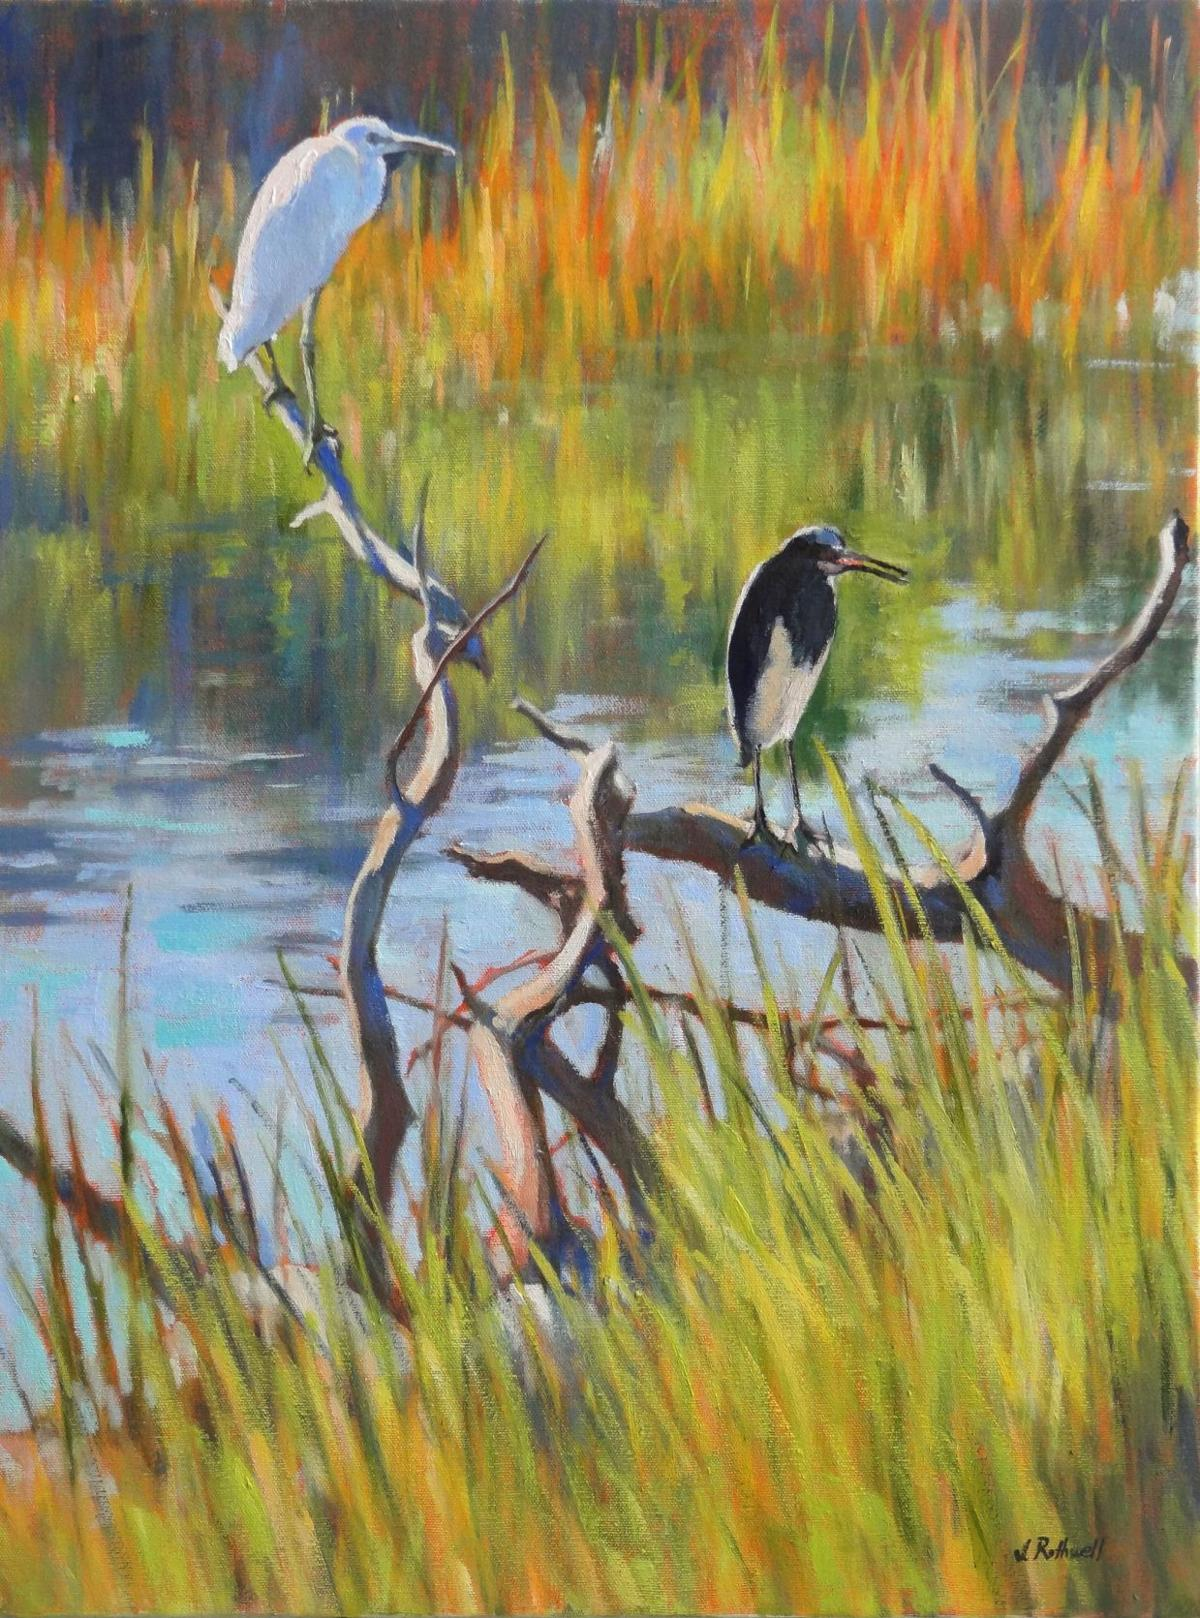 Wells Gallery at The Sanctuary to host live painting event